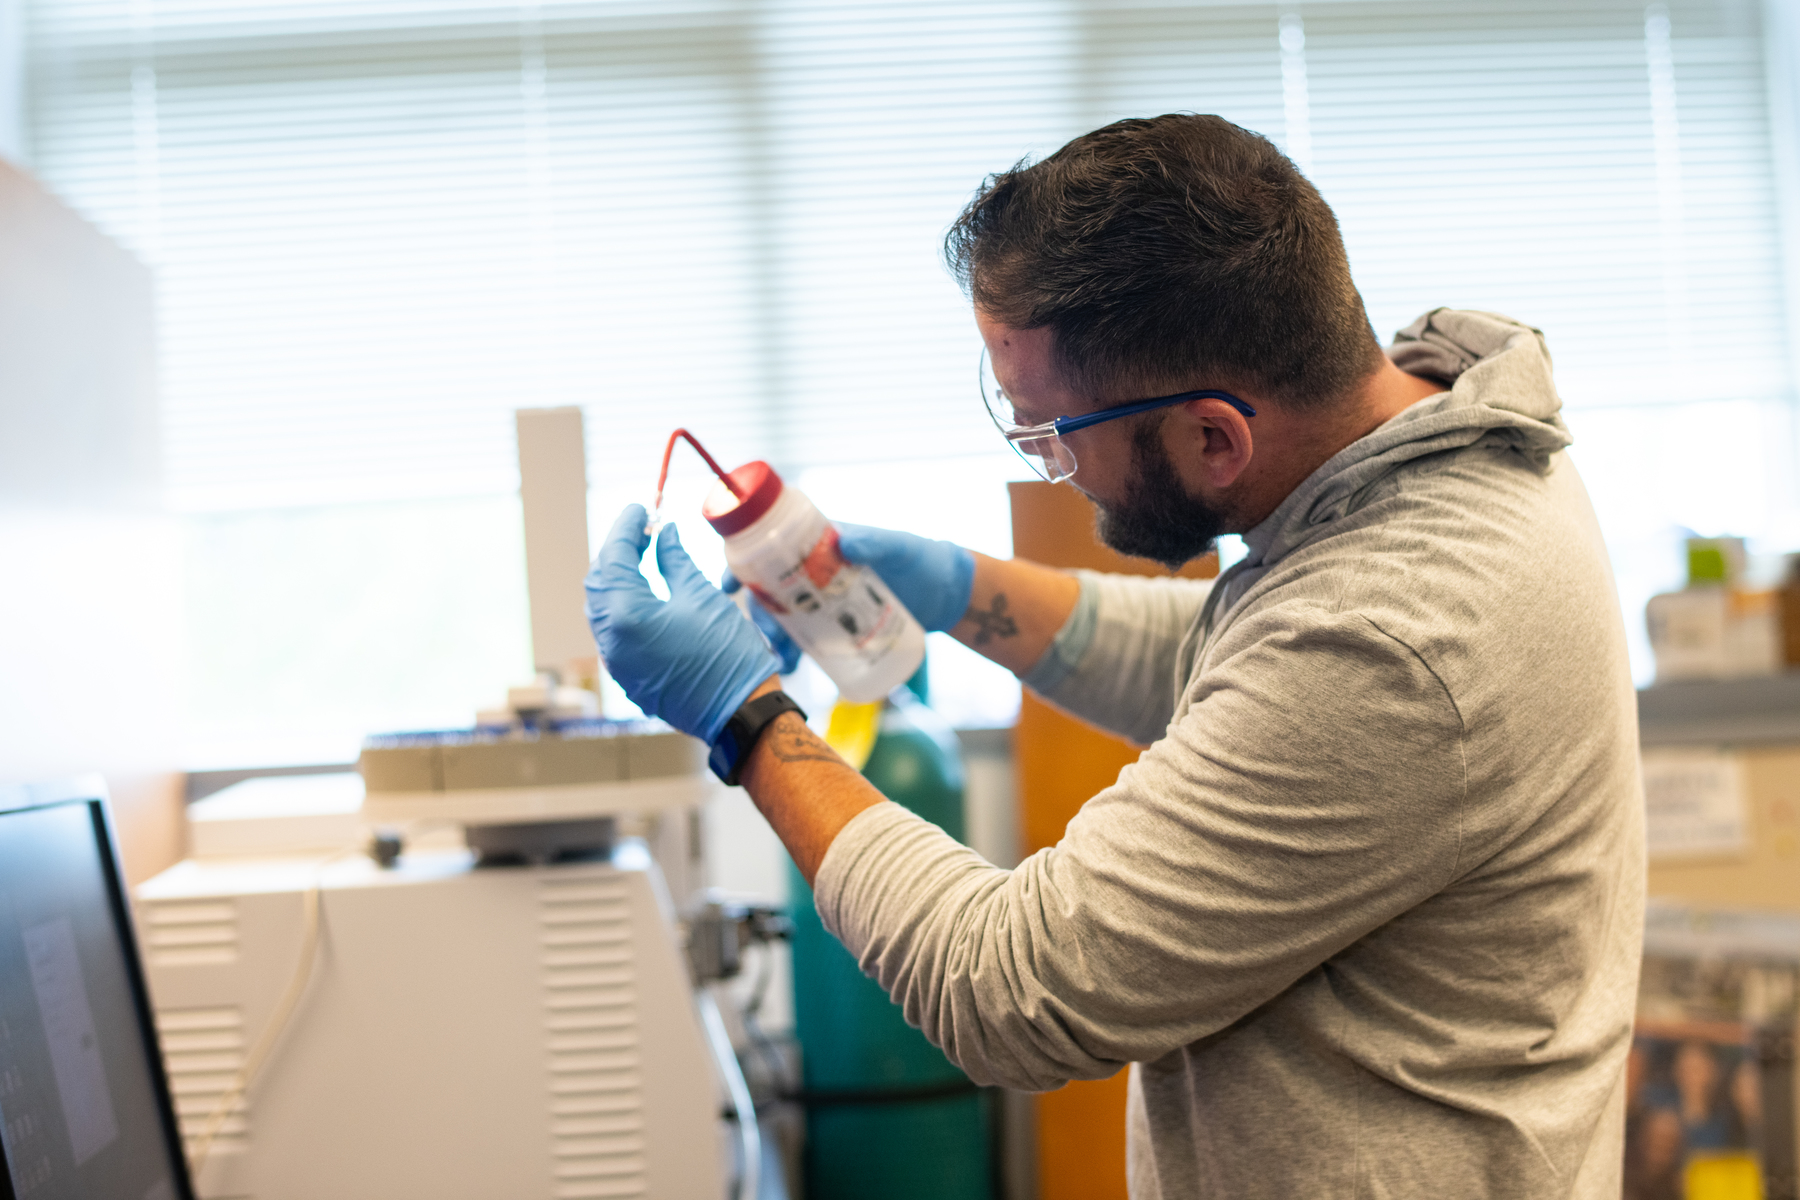 A male student works on an experiment in the biochemistry laboratory